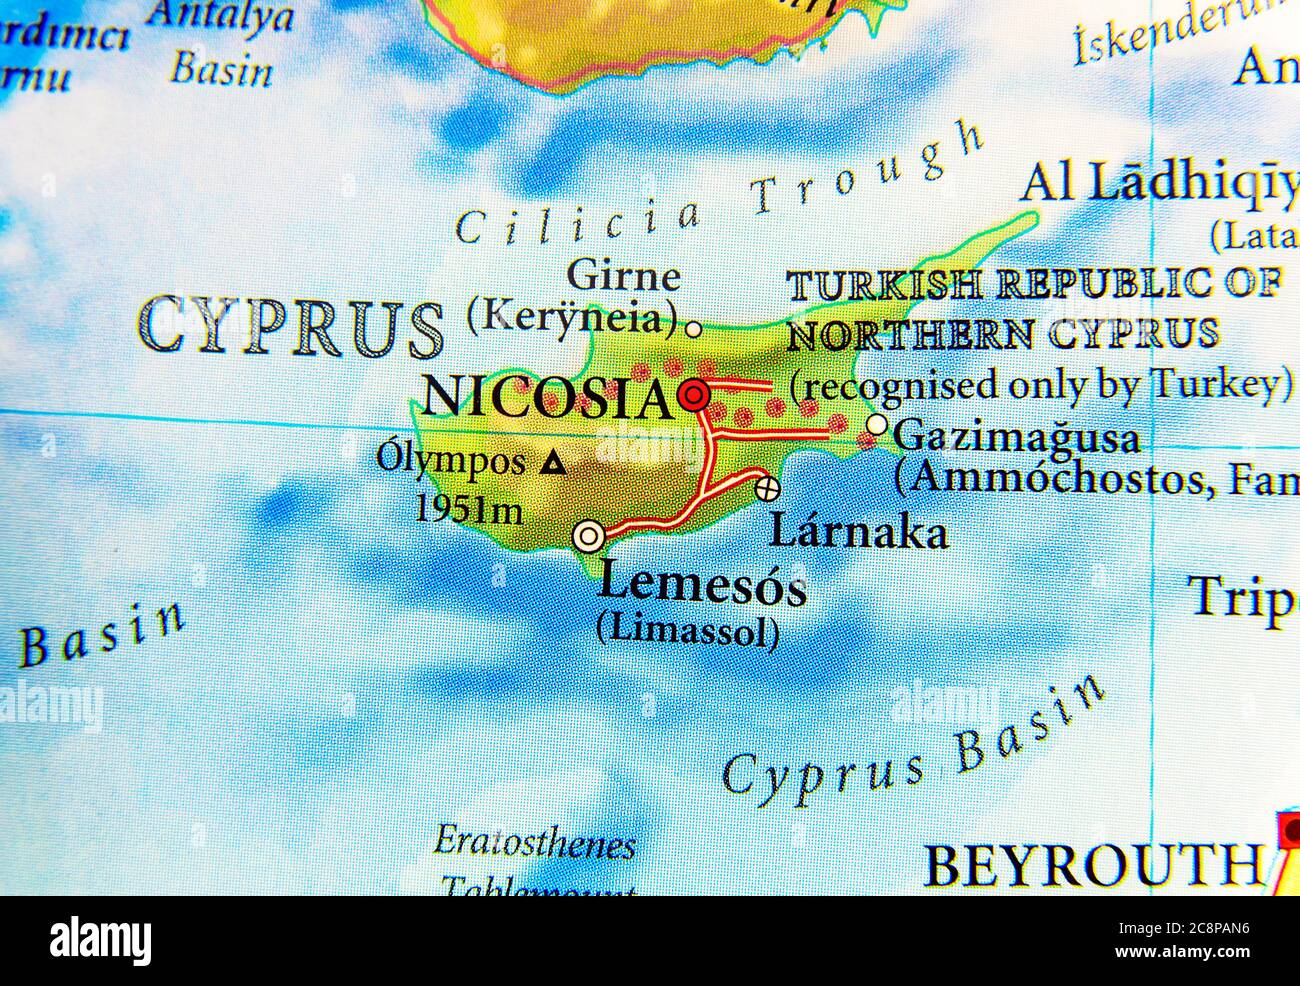 Picture of: Geographic Map Of European Country Greece And Turkey Island Cyprus Stock Photo Alamy